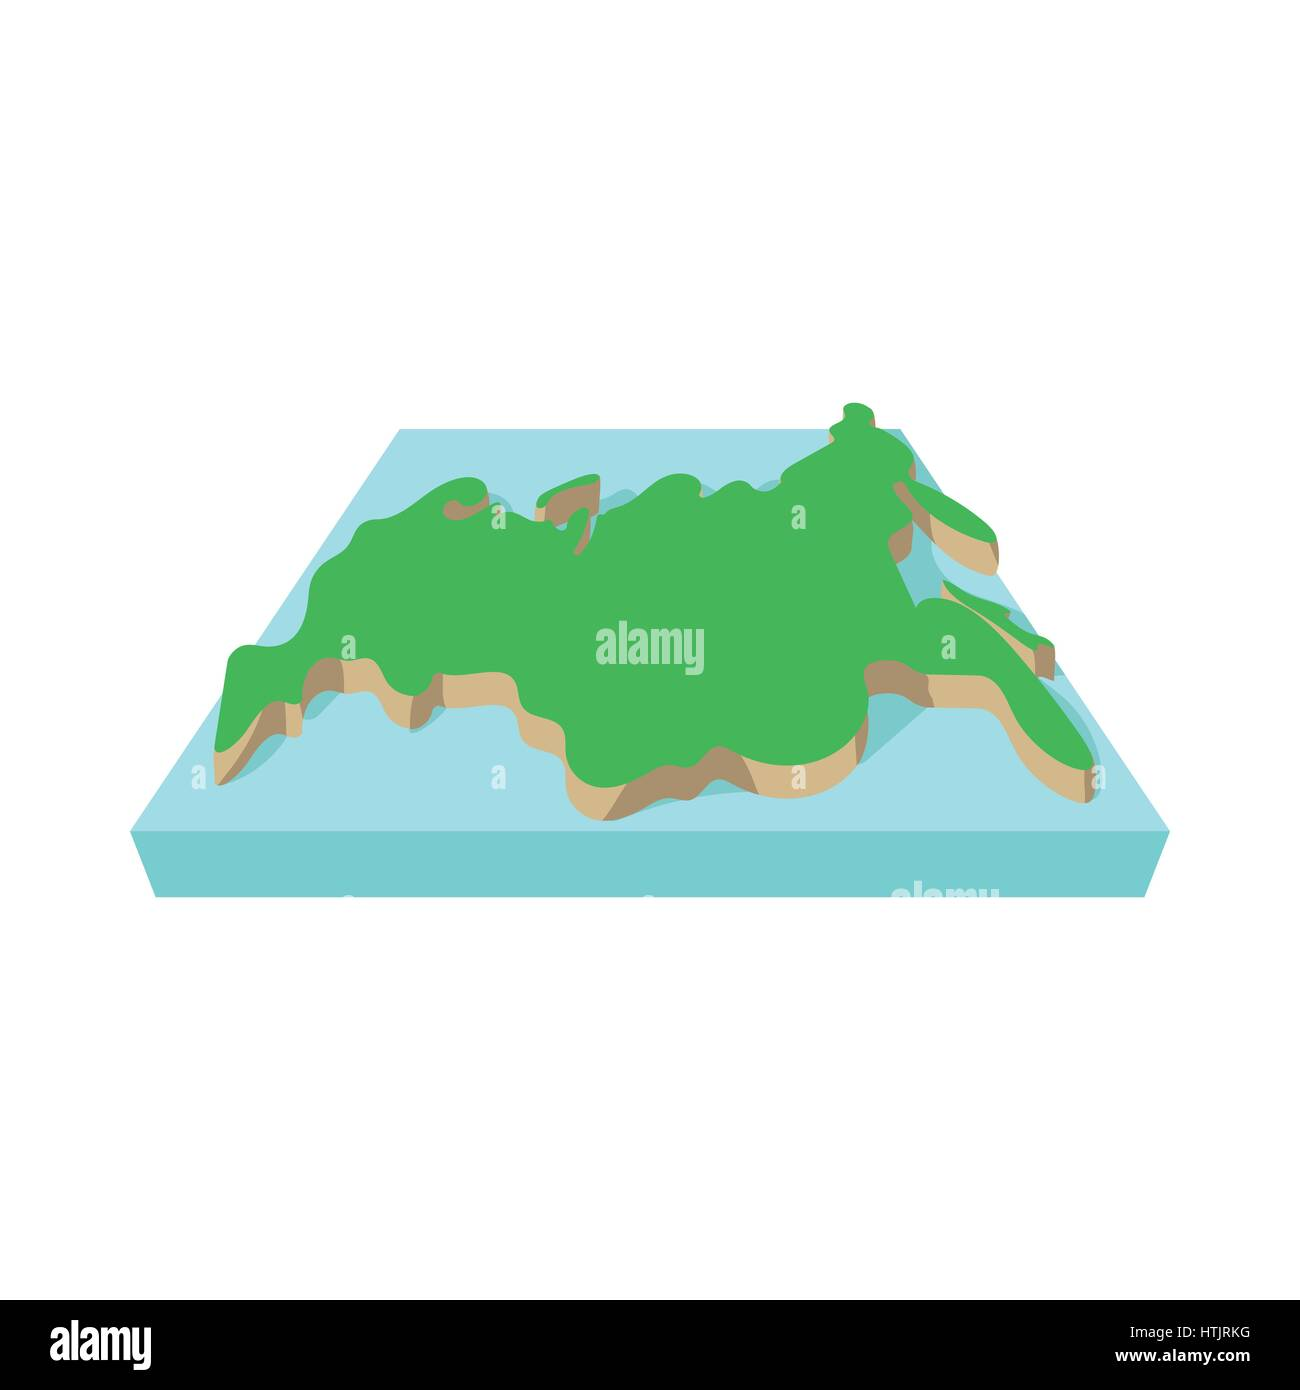 Europe Russia Map Cut Out Stock Images & Pictures - Alamy